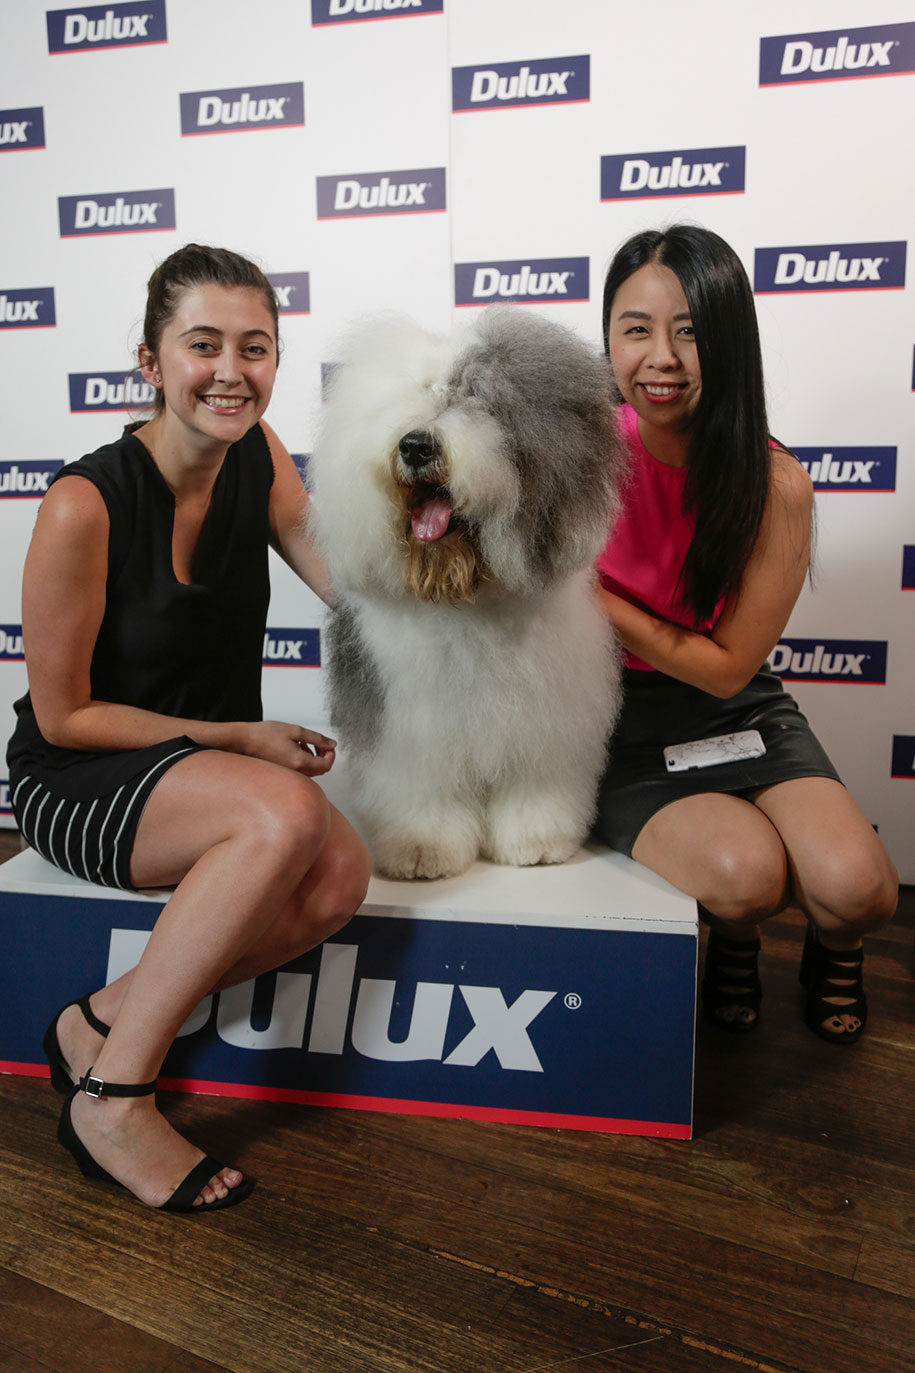 2016-Dulux-Colour-Launch-Sydney-©-SaltyDingo-2016-11570